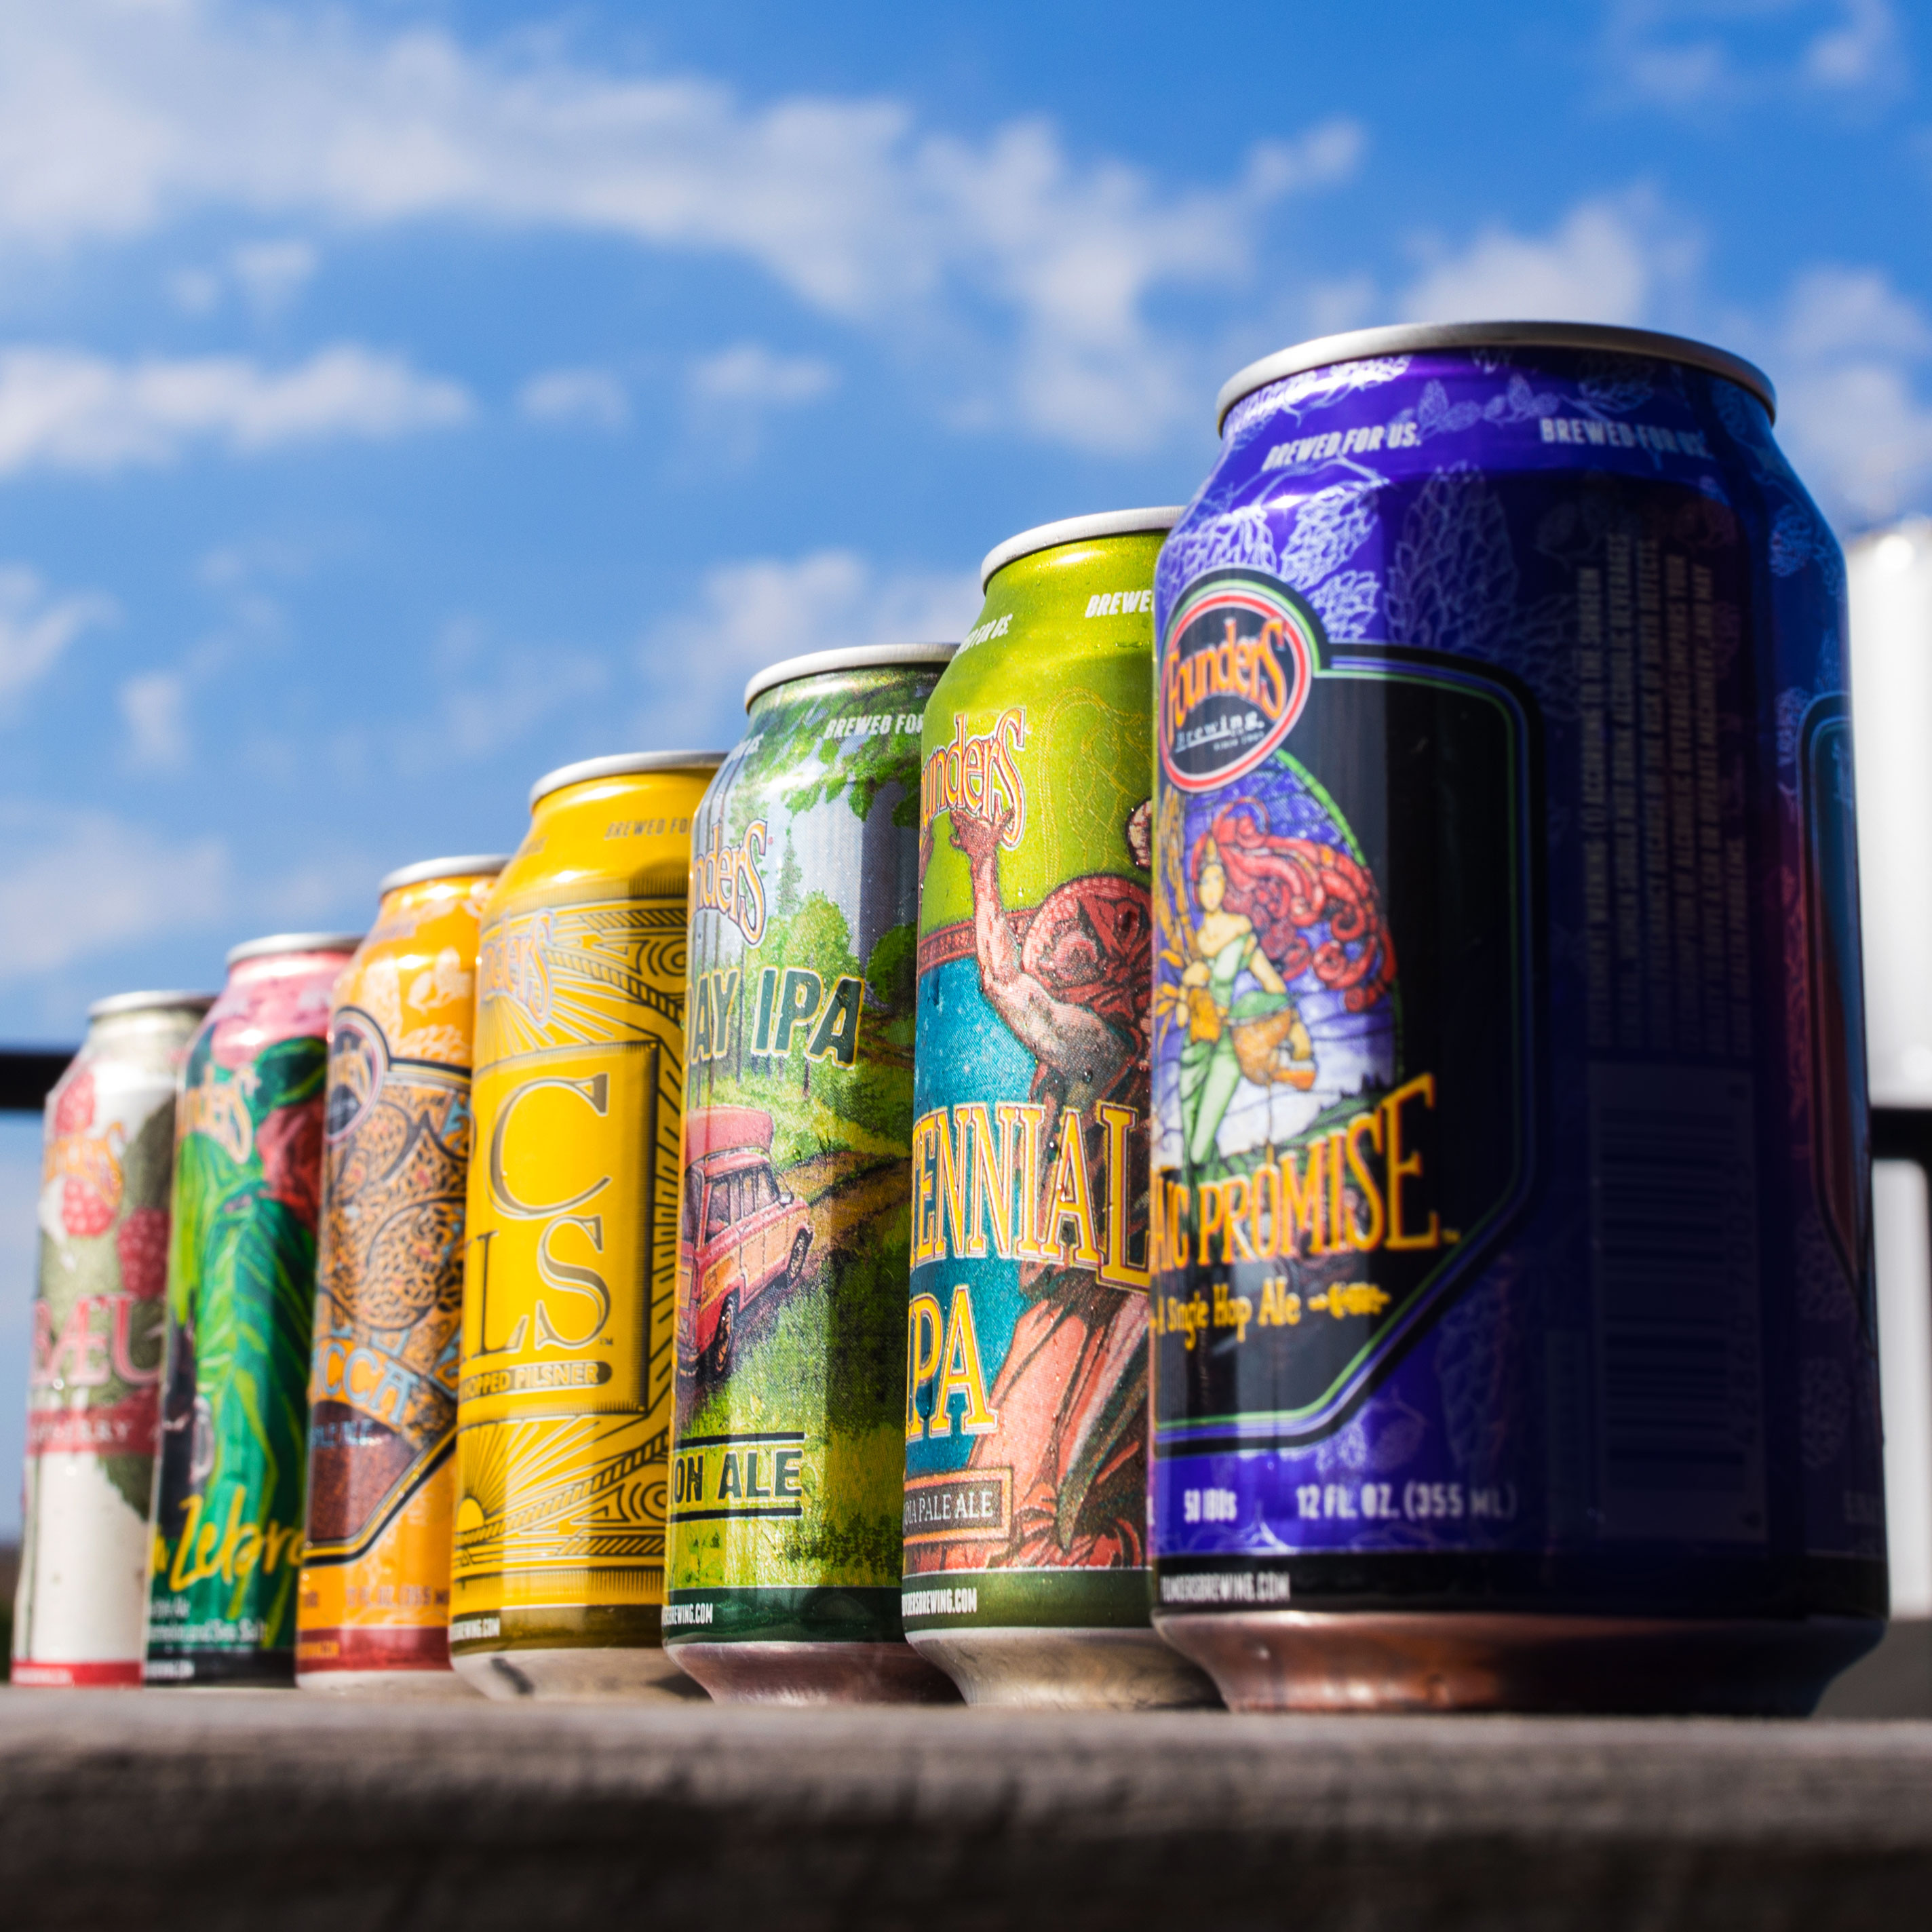 Cans of Founders beer sitting on ledge